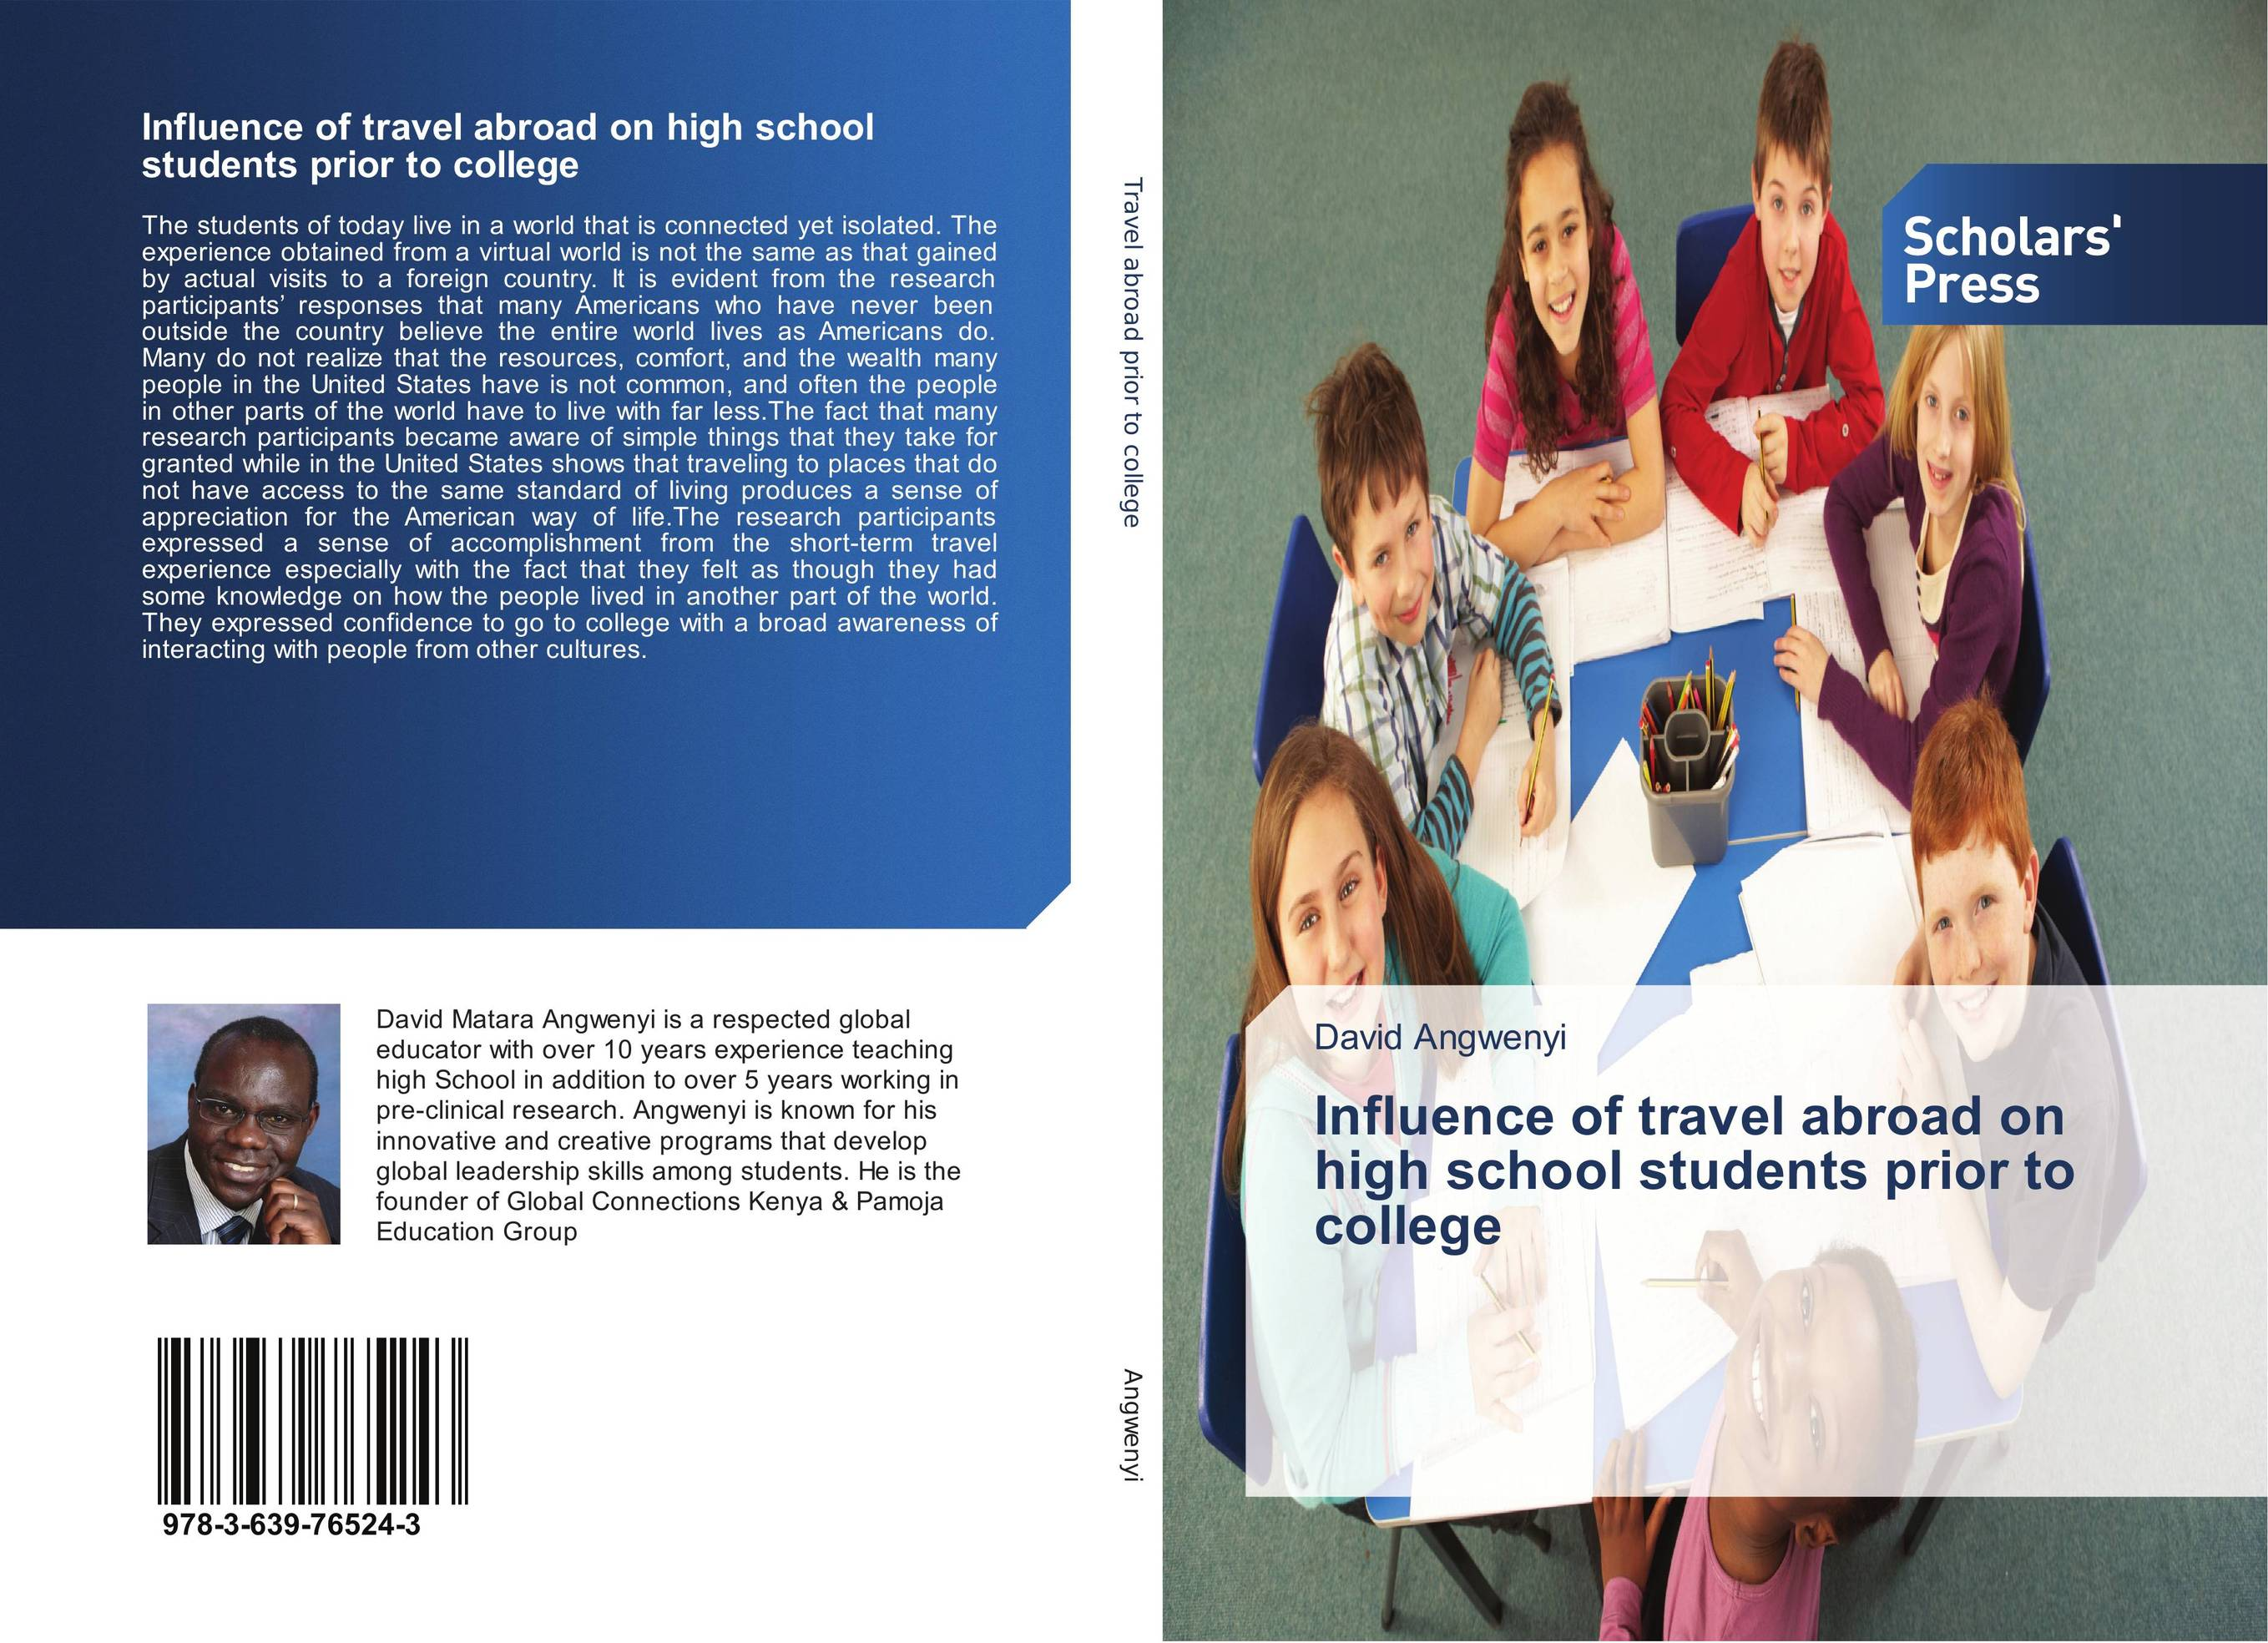 Influence of travel abroad on high school students prior to college doug lemov teach like a champion 2 0 62 techniques that put students on the path to college